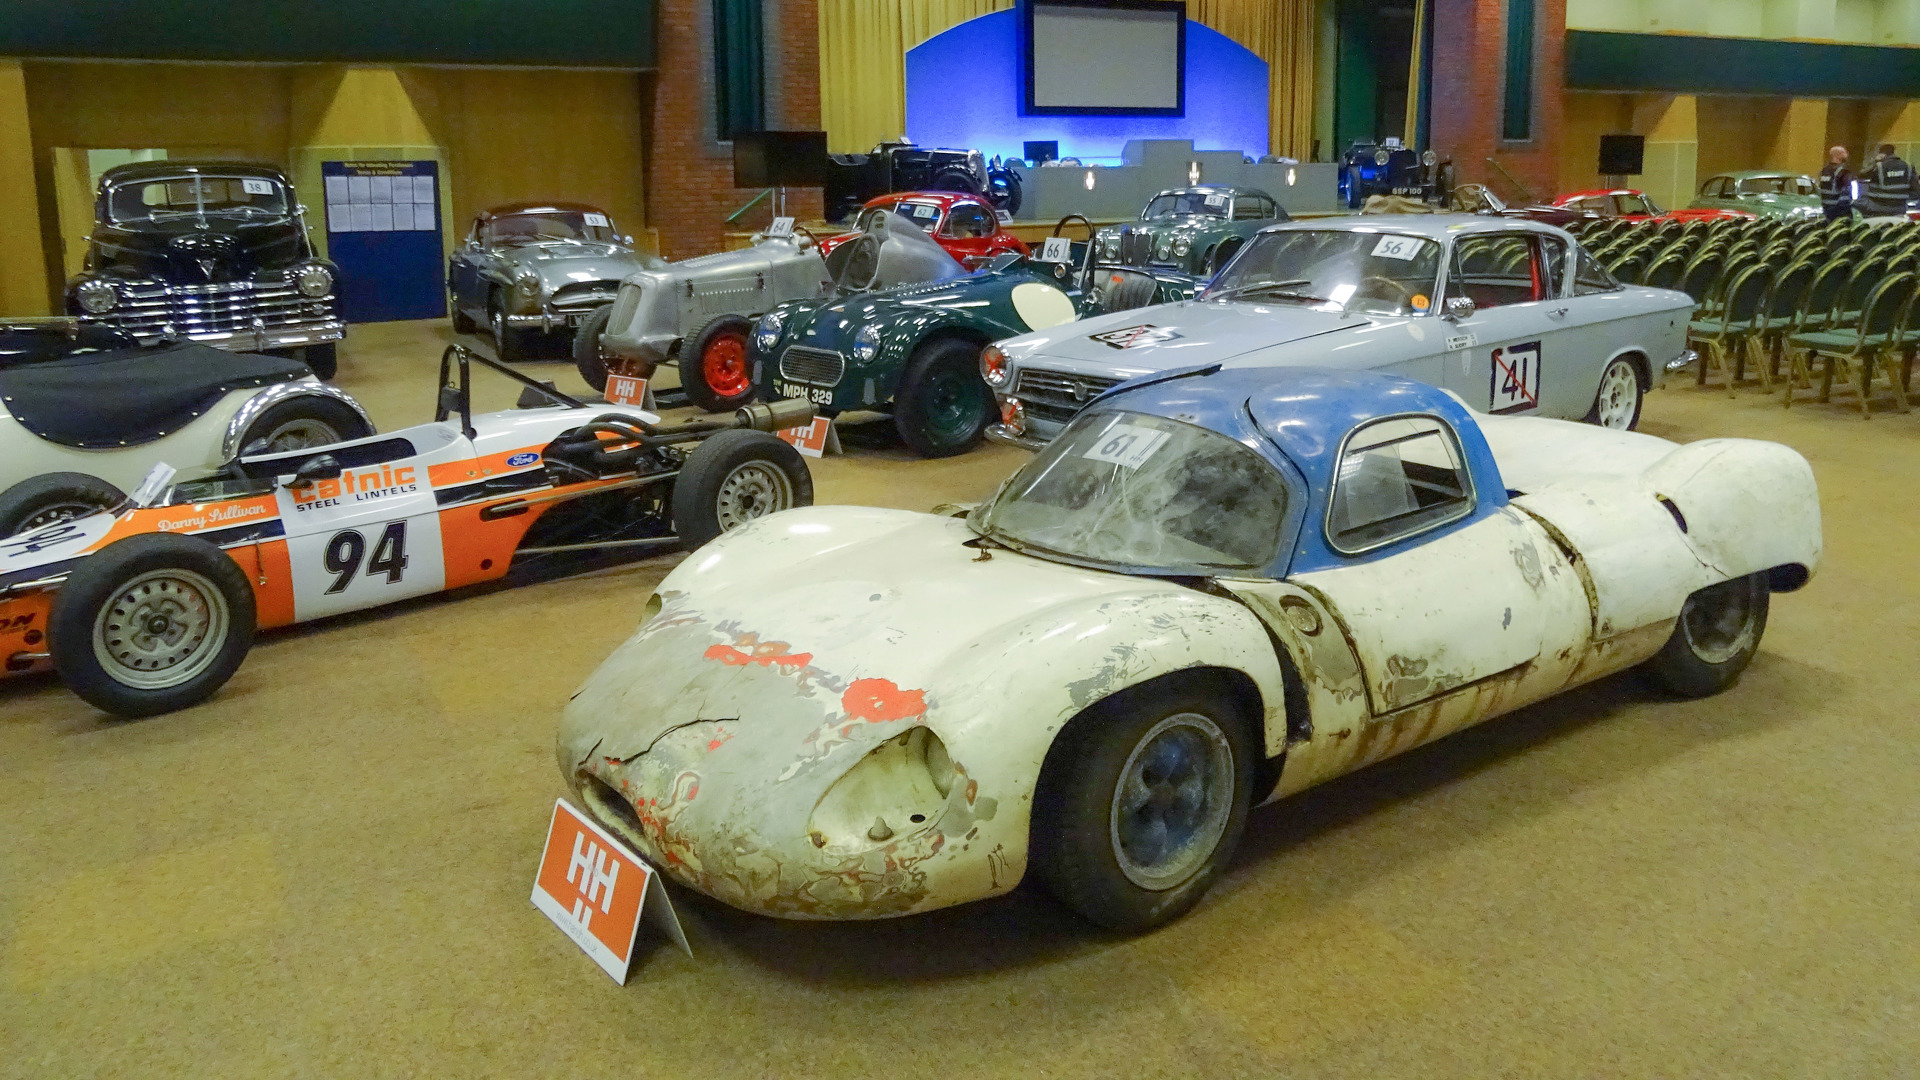 Barn-find British race car with wood chassis sells for $105k at auction